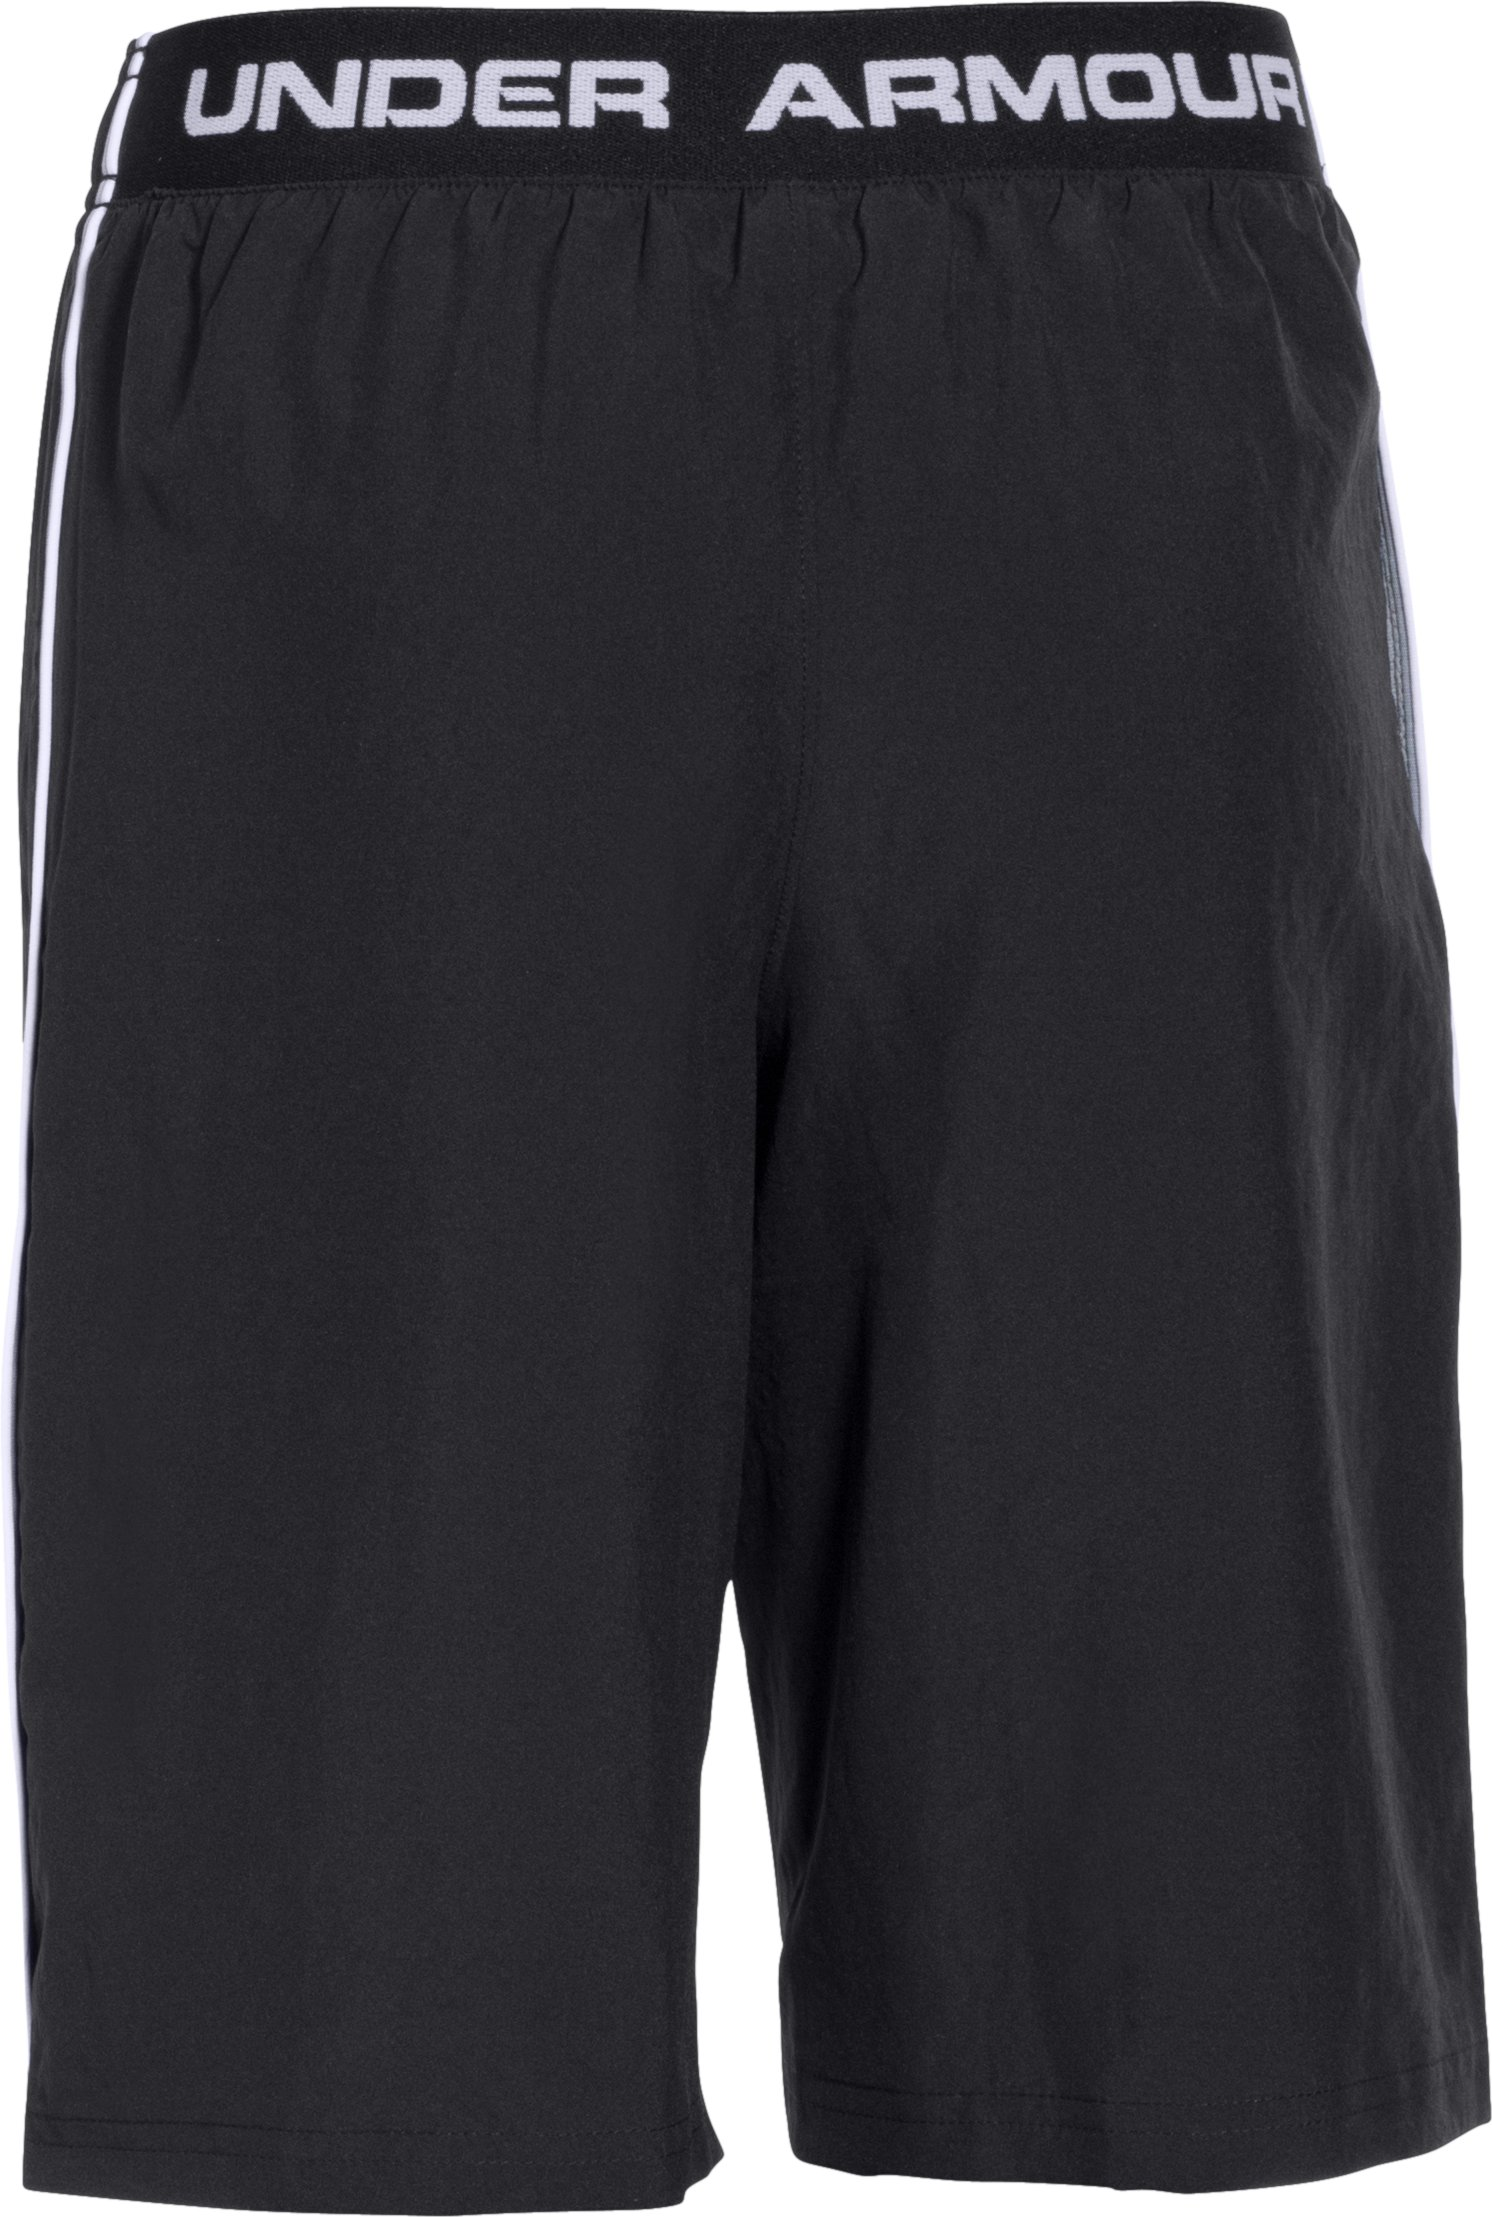 Boys' UA Edge Shorts, Black